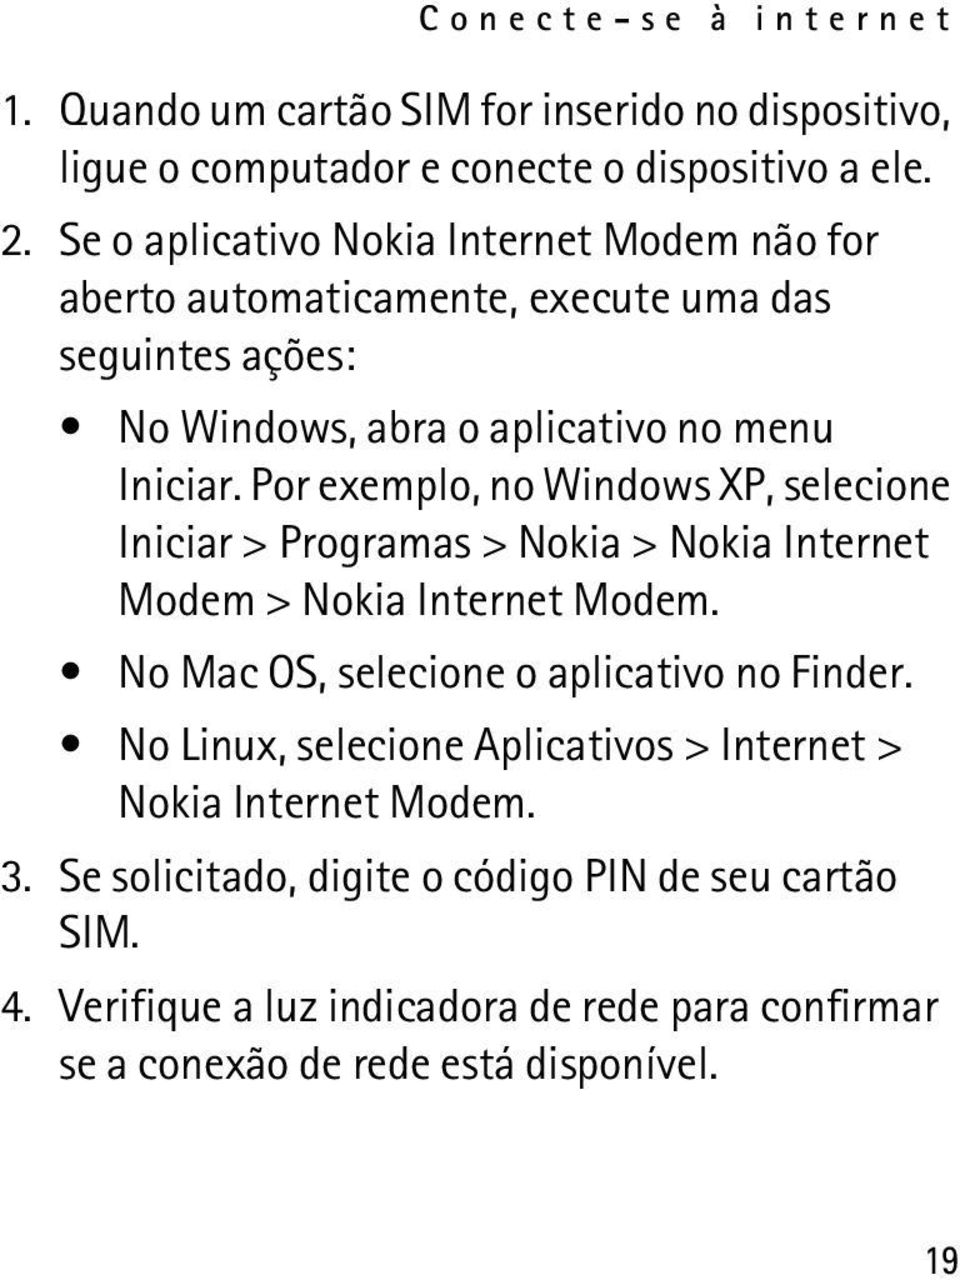 Por exemplo, no Windows XP, selecione Iniciar > Programas > Nokia > Nokia Internet Modem > Nokia Internet Modem. No Mac OS, selecione o aplicativo no Finder.